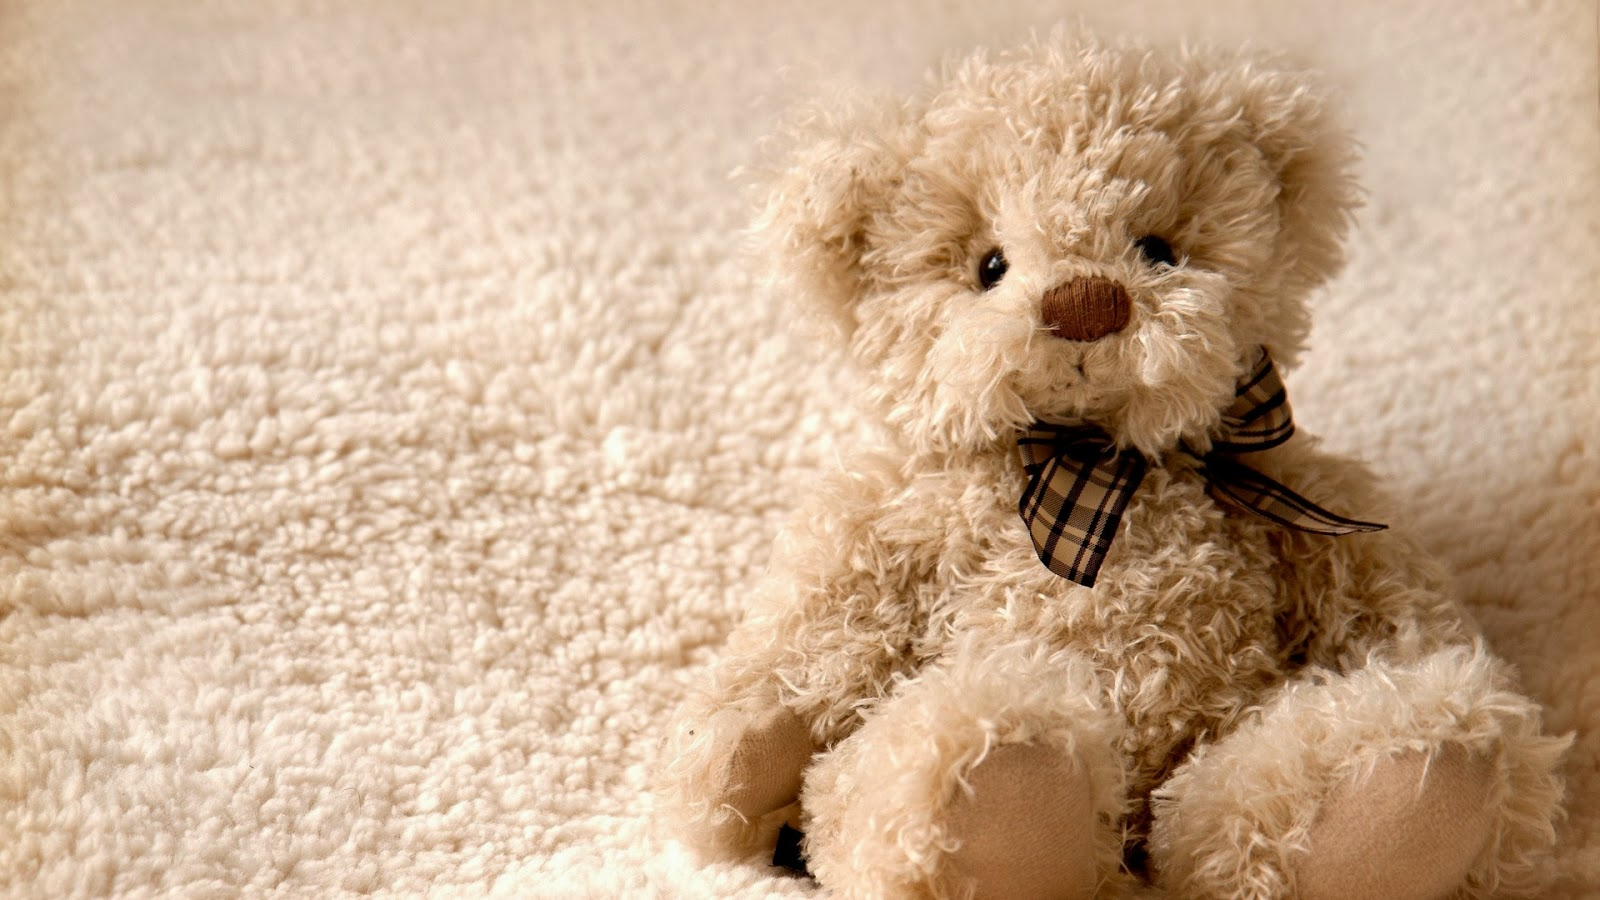 Very Cute Girl Hd Wallpapers Lovely And Beautiful Teddy Bear Wallpapers Image Wallpapers